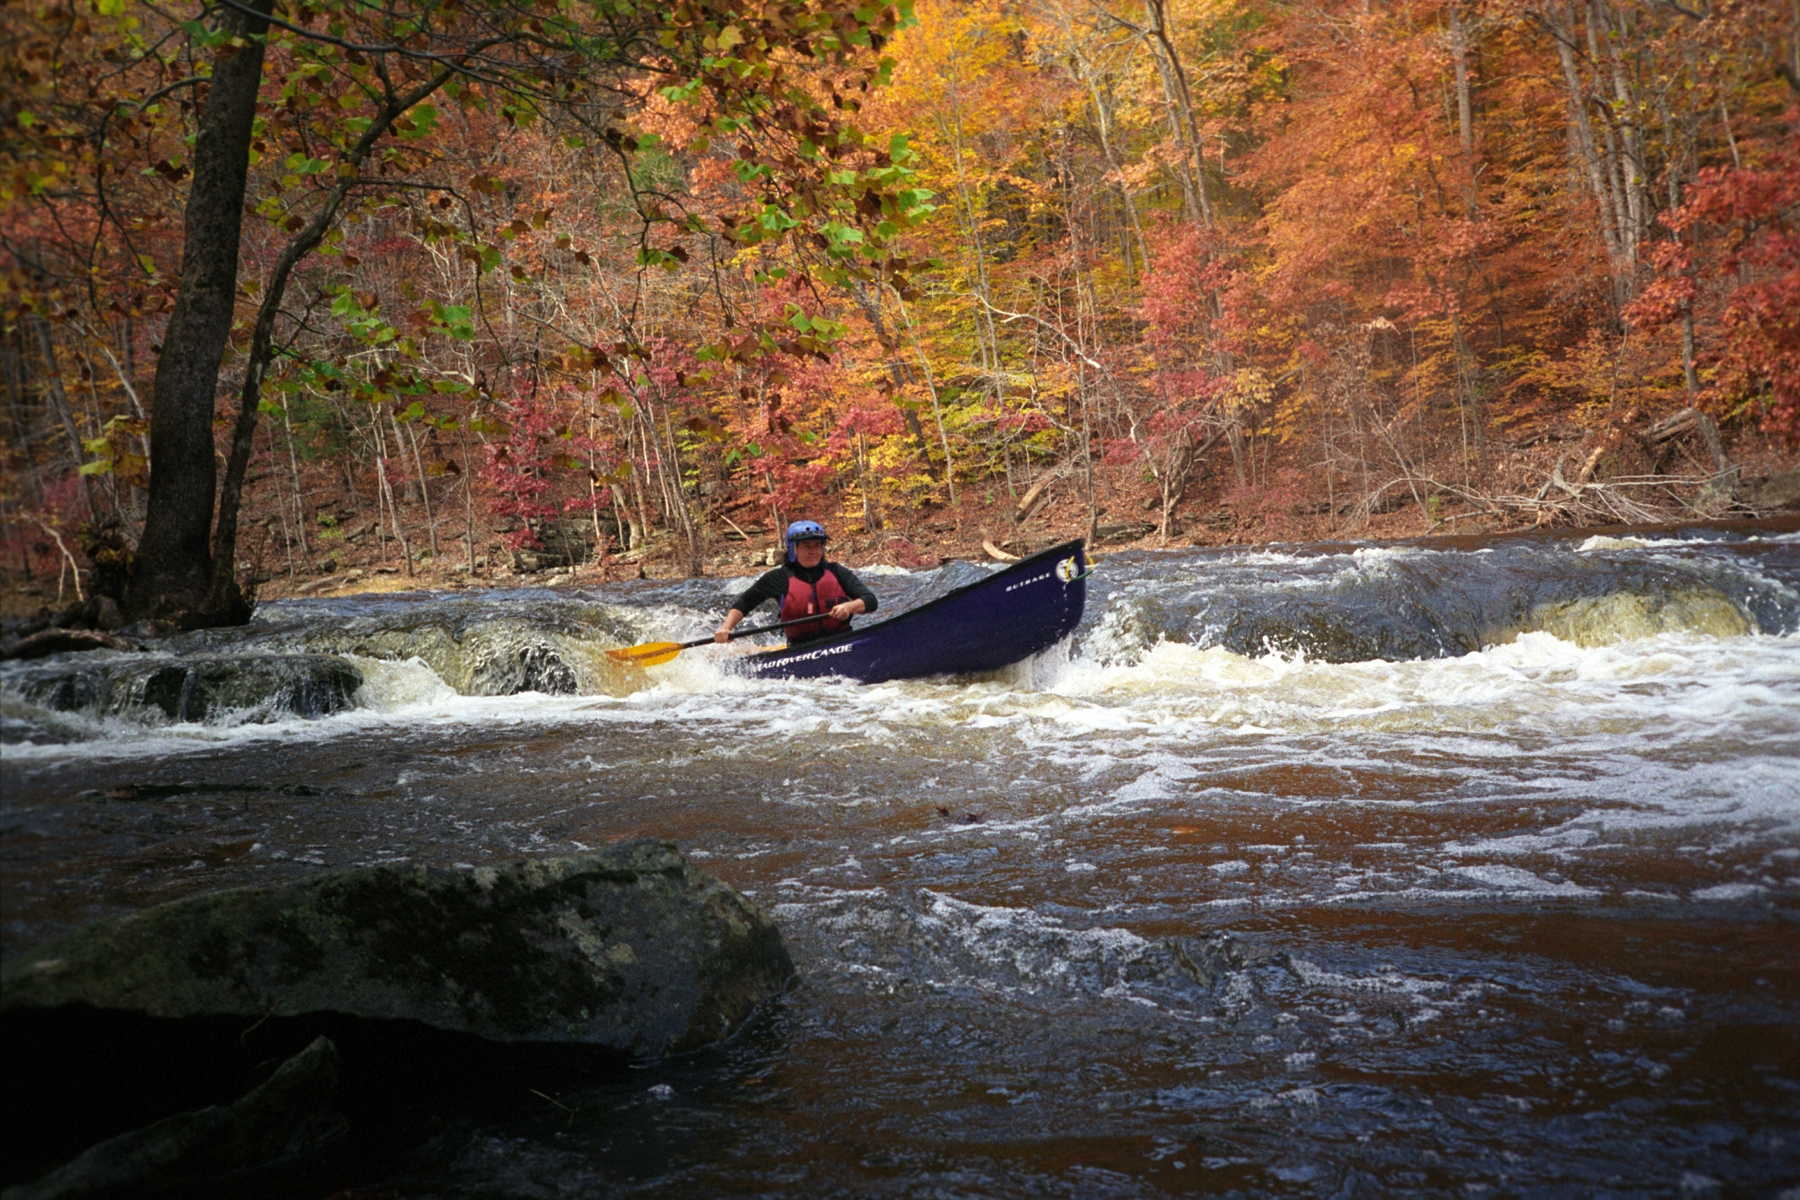 Angie Sigmund paddling the first ledge (Photo by Beth Koller - 11/5/05)